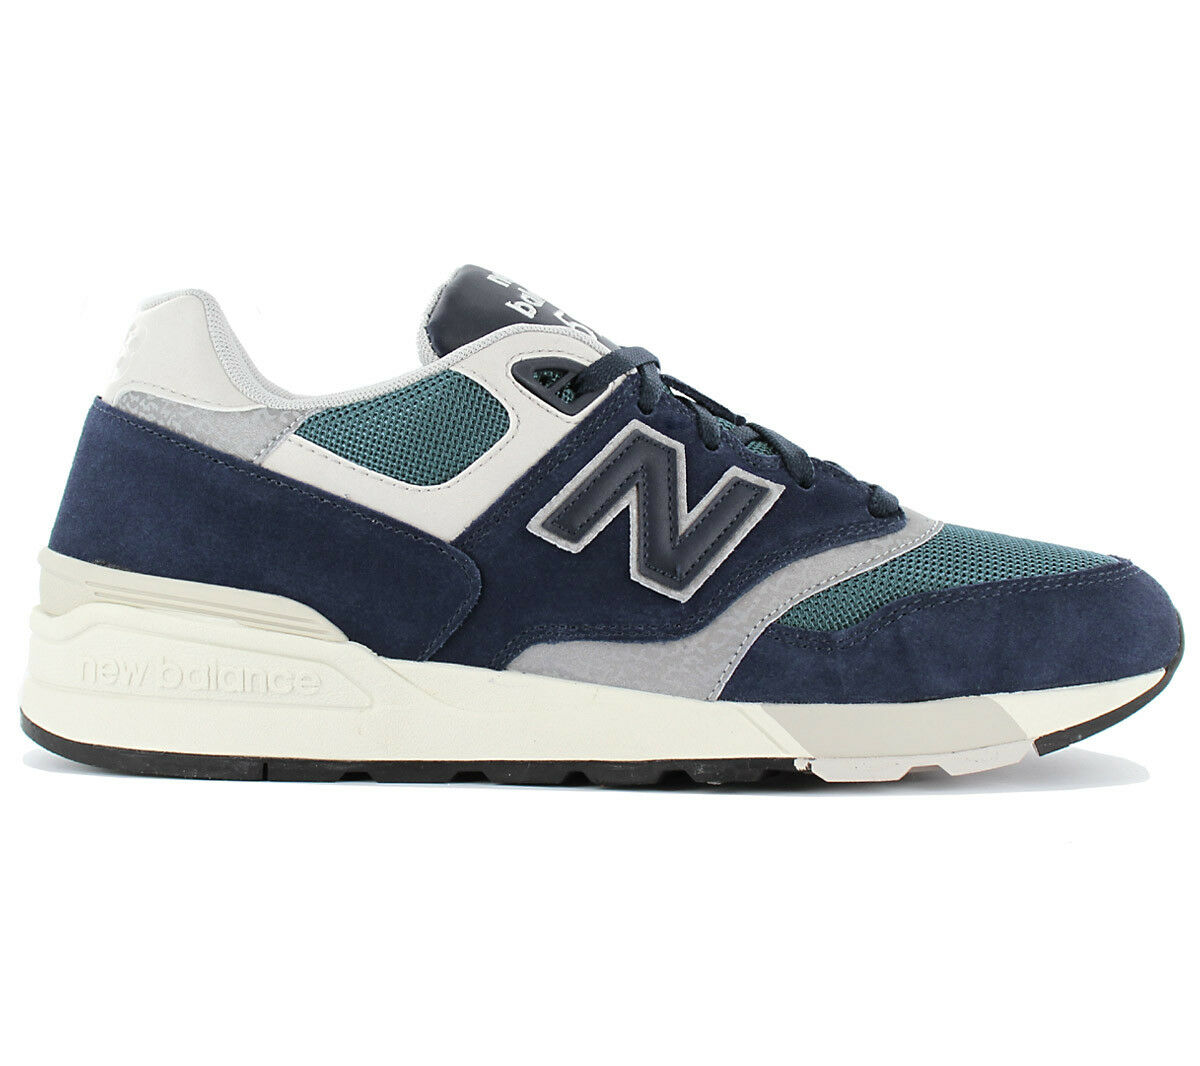 NEW BALANCE CLASSICS 597 Sneaker Men's Shoes Blue Trainers ML597 ML597AAA